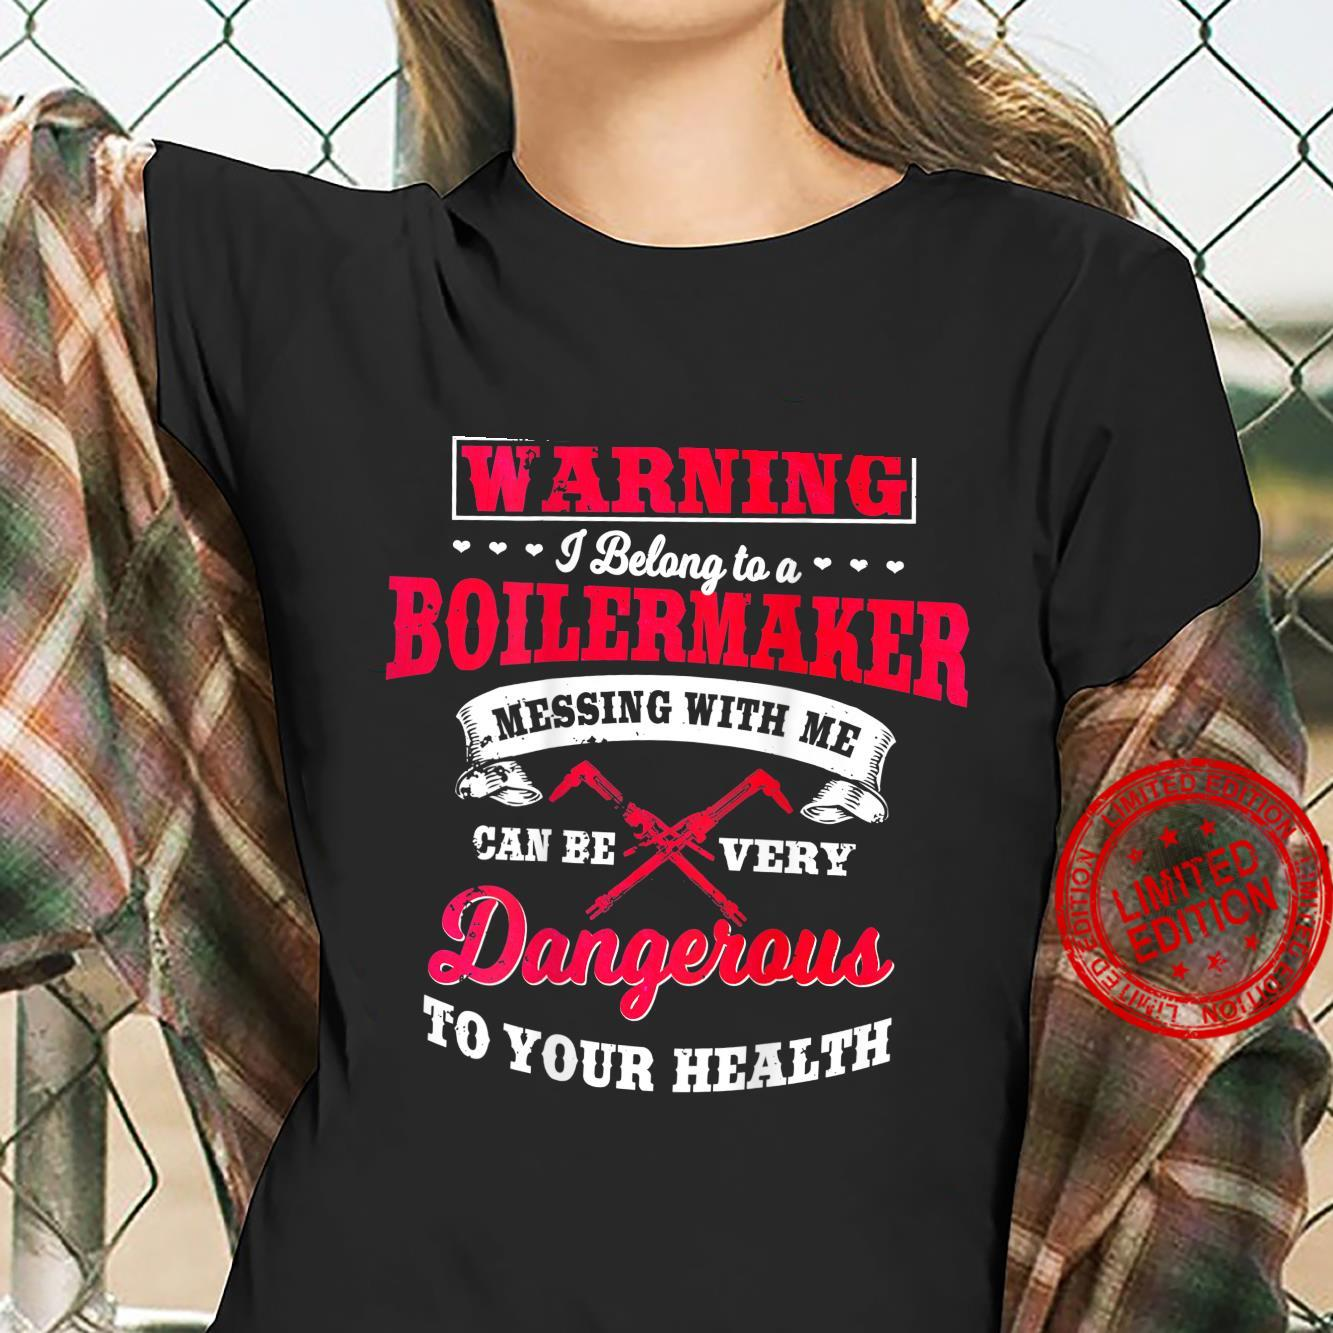 Boilermaker Wife Design On Back Of Clothing Shirt ladies tee